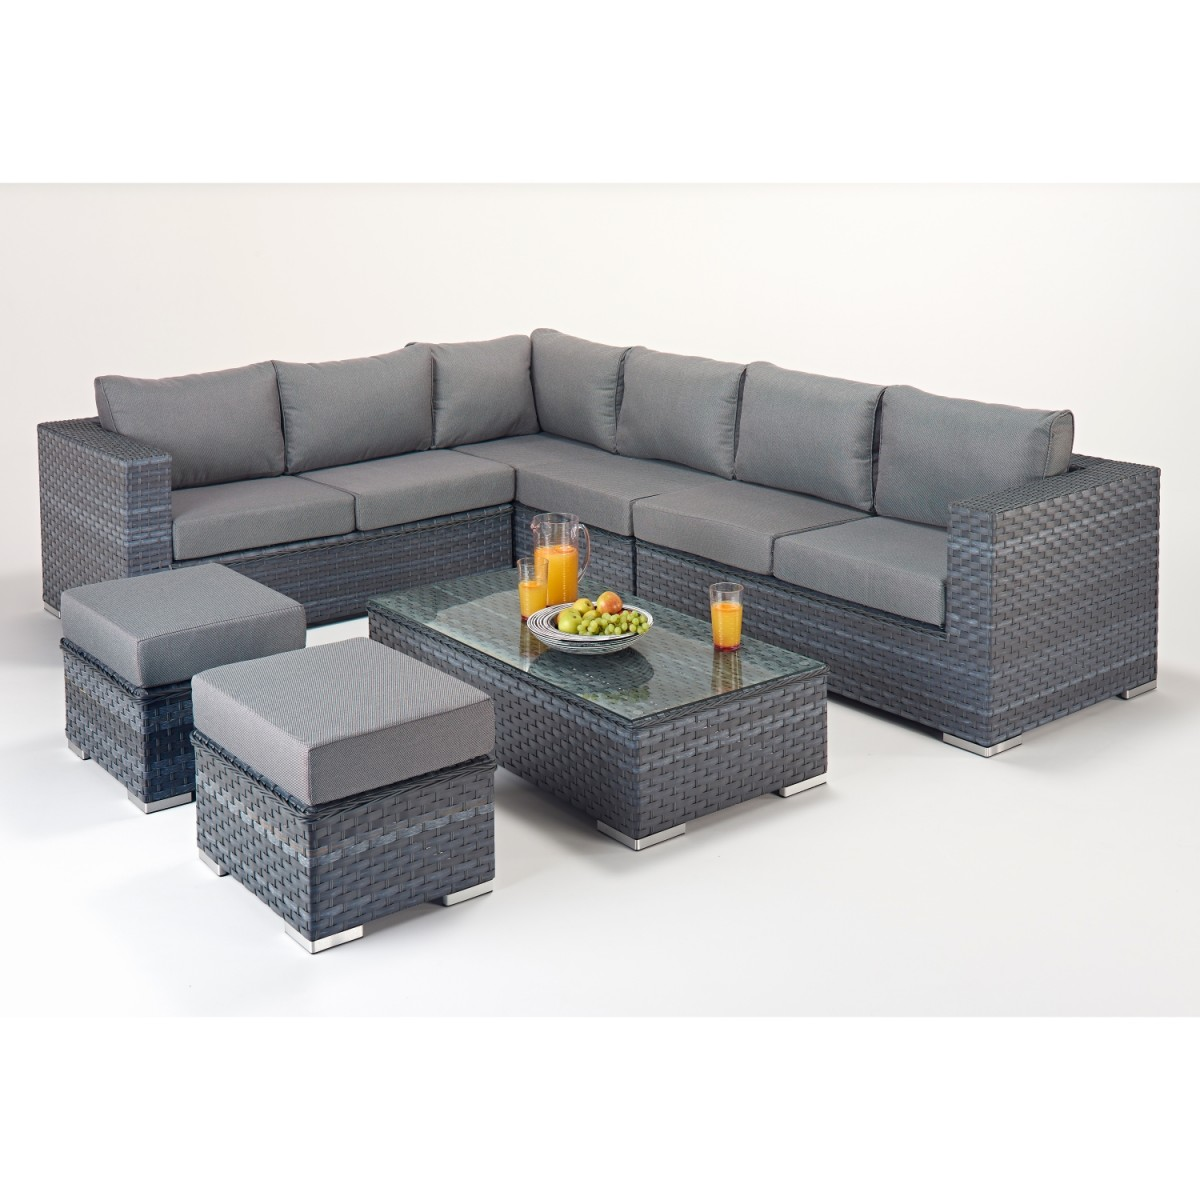 rattan set platinum large corner sofa set wgf 502 left hand. Black Bedroom Furniture Sets. Home Design Ideas